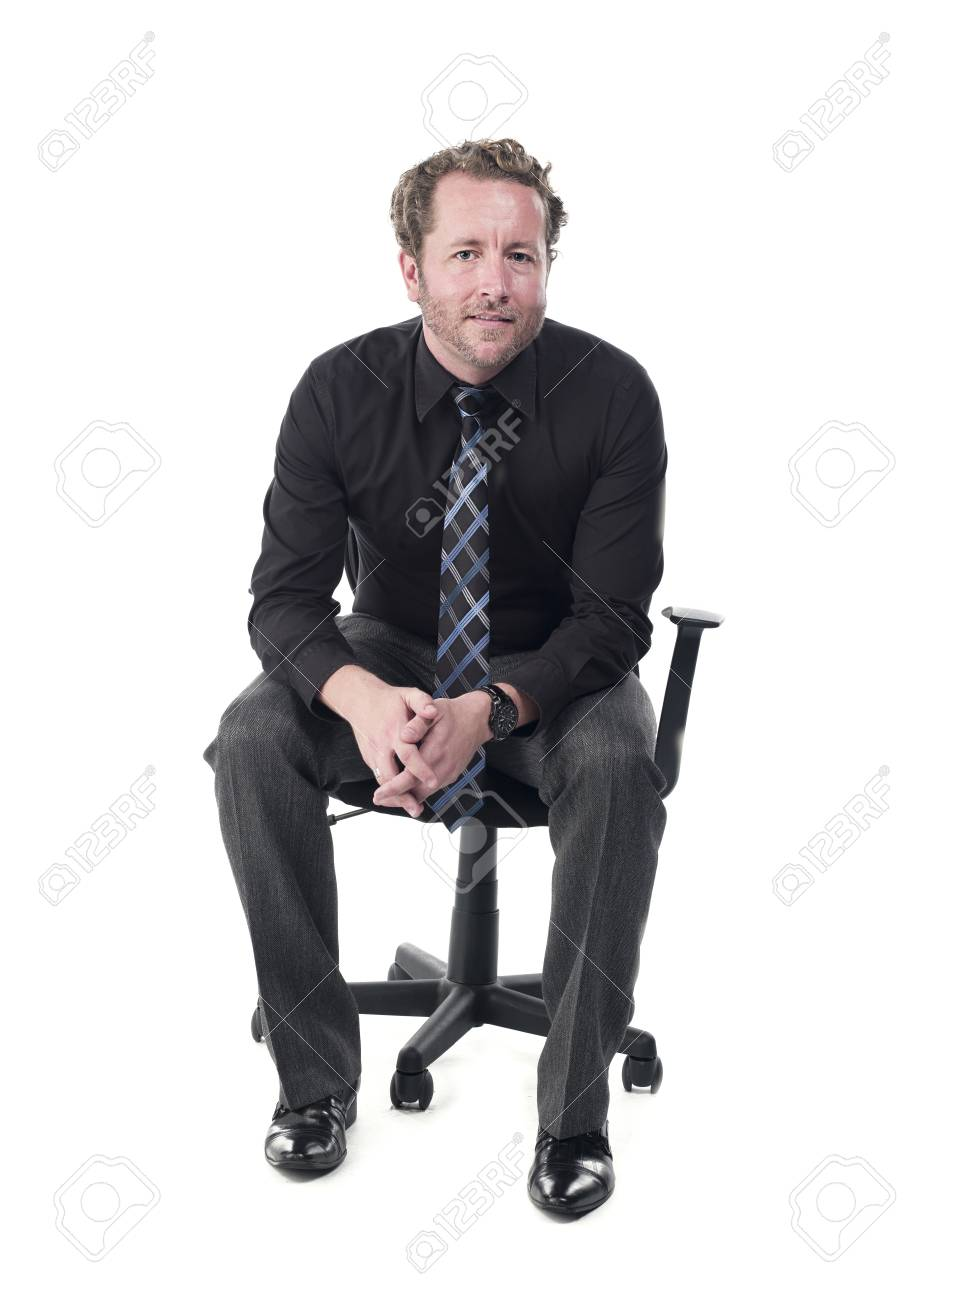 Portrait of a young doctor sitting on chair against white background, Model: Derek Gerhardt Stock Photo - 17244320